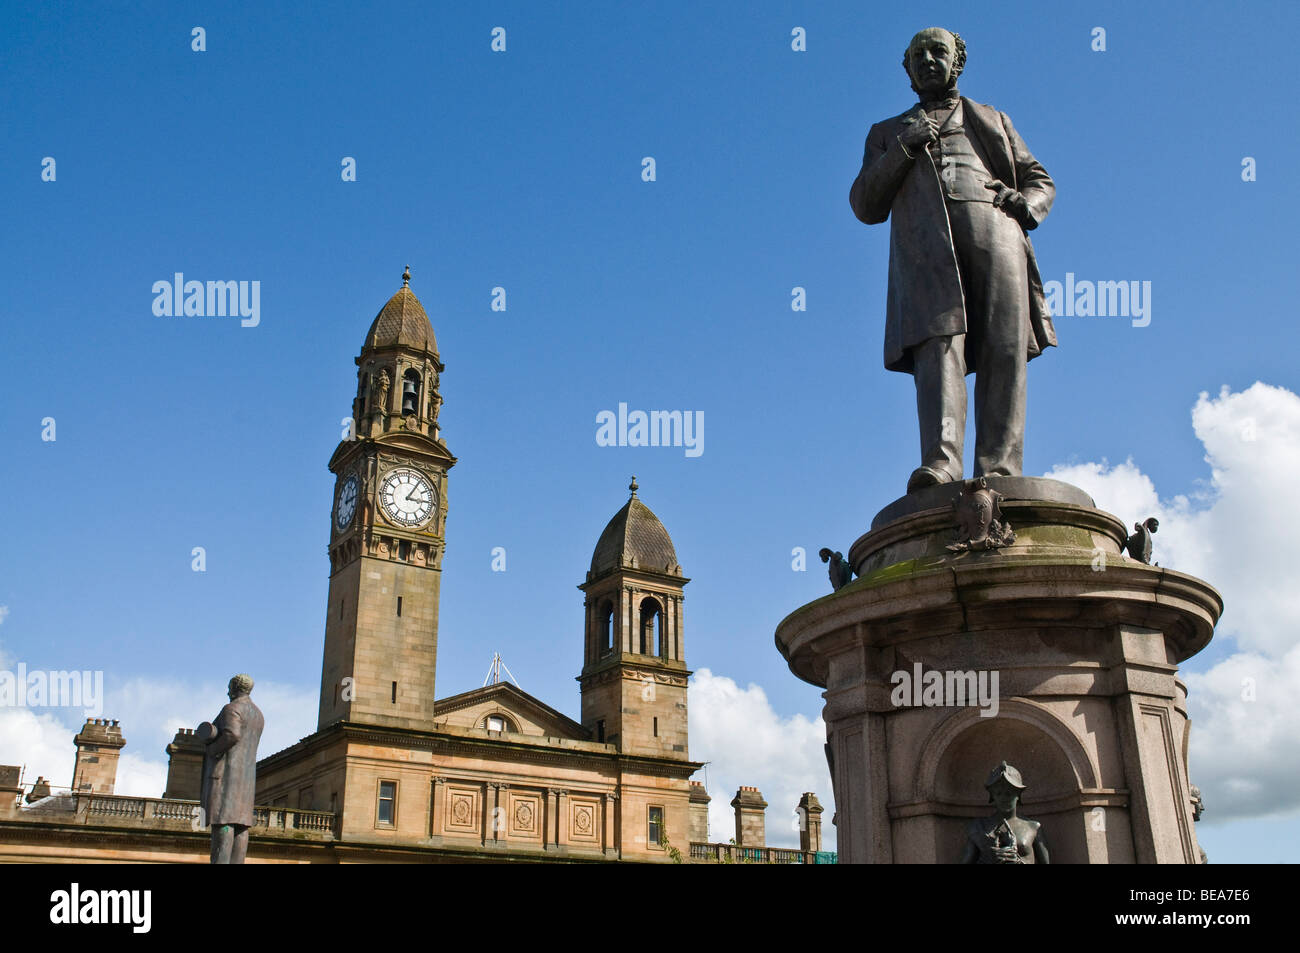 dh Paisley Town Hall PAISLEY RENFREWSHIRE Sir Peter Coats statue Paisley Town hall centre monument Stock Photo